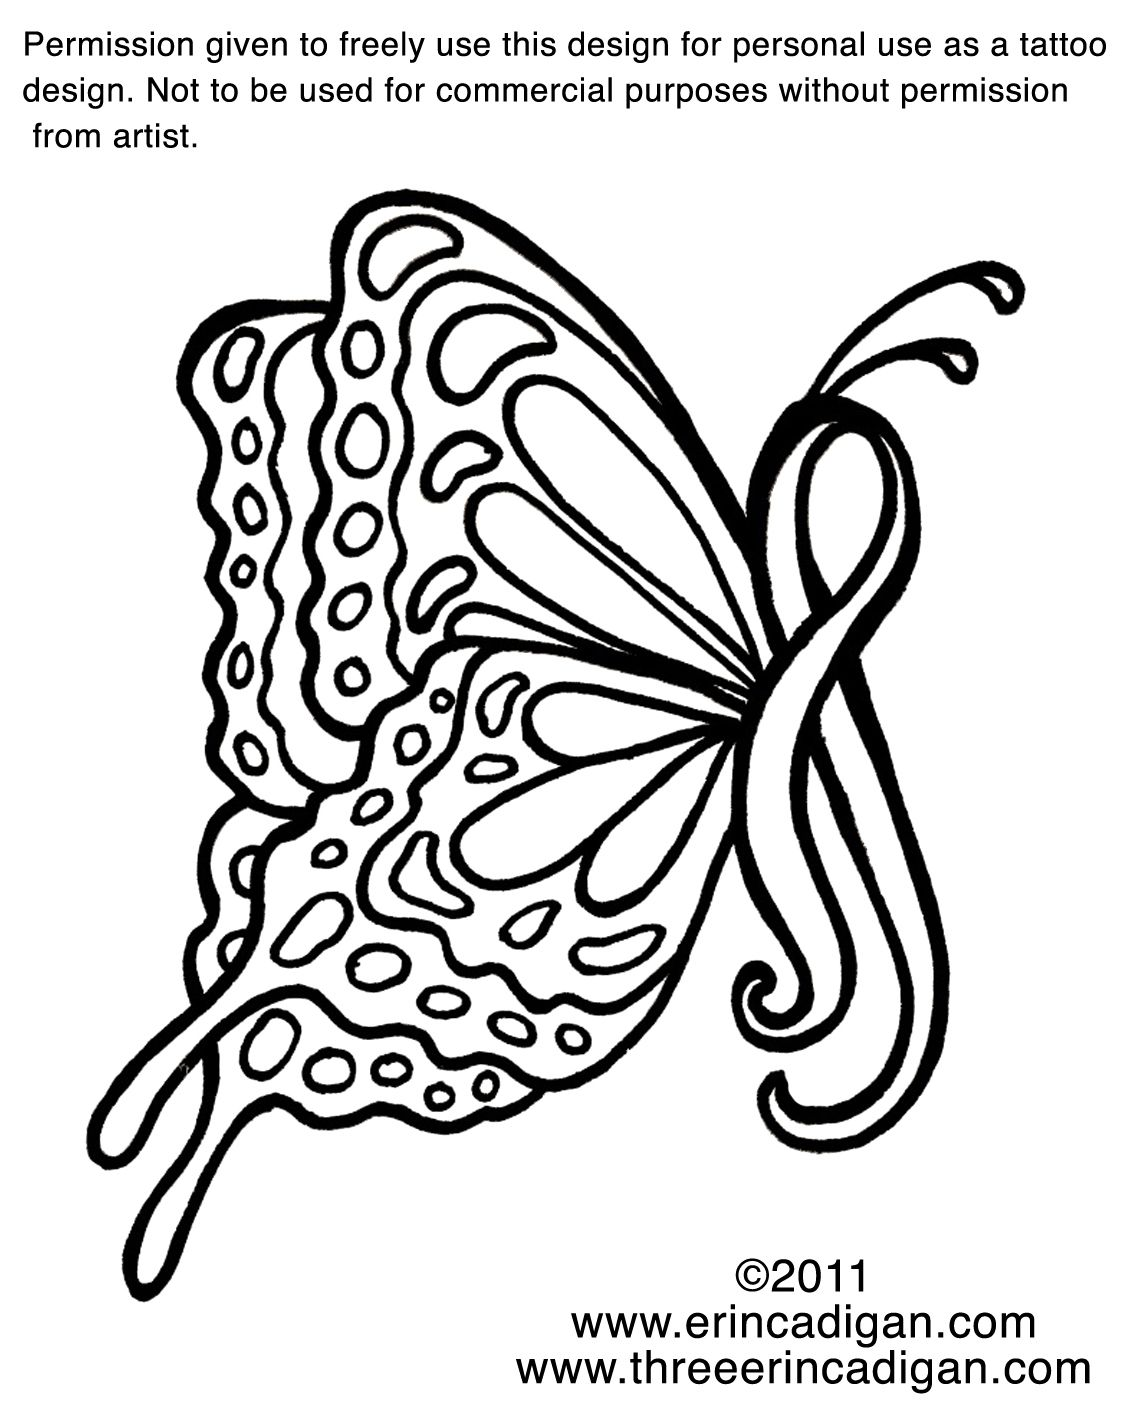 Breast cancer awareness month u free tattoo designs adult doodle